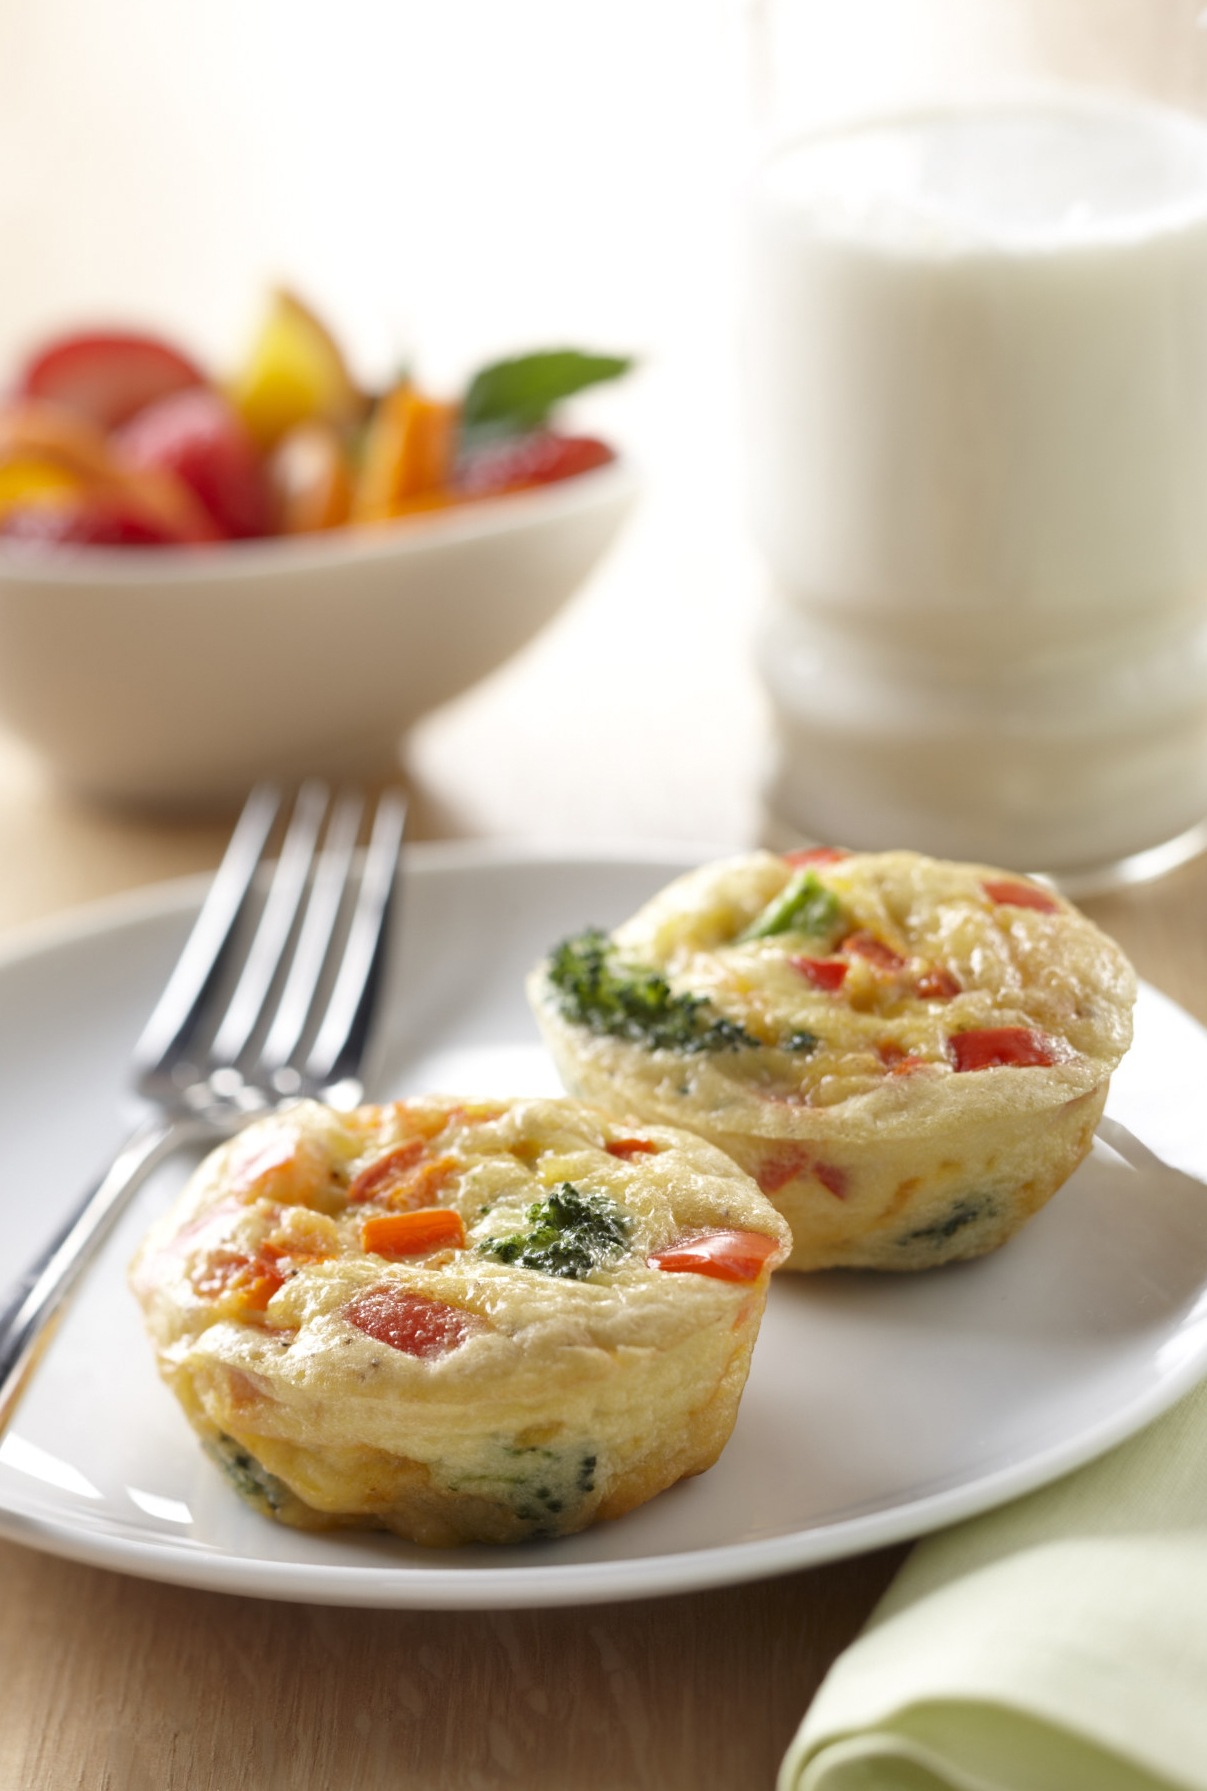 Broccoli and Cheese Frittatas - Milk Recipes and Other Healthy ...